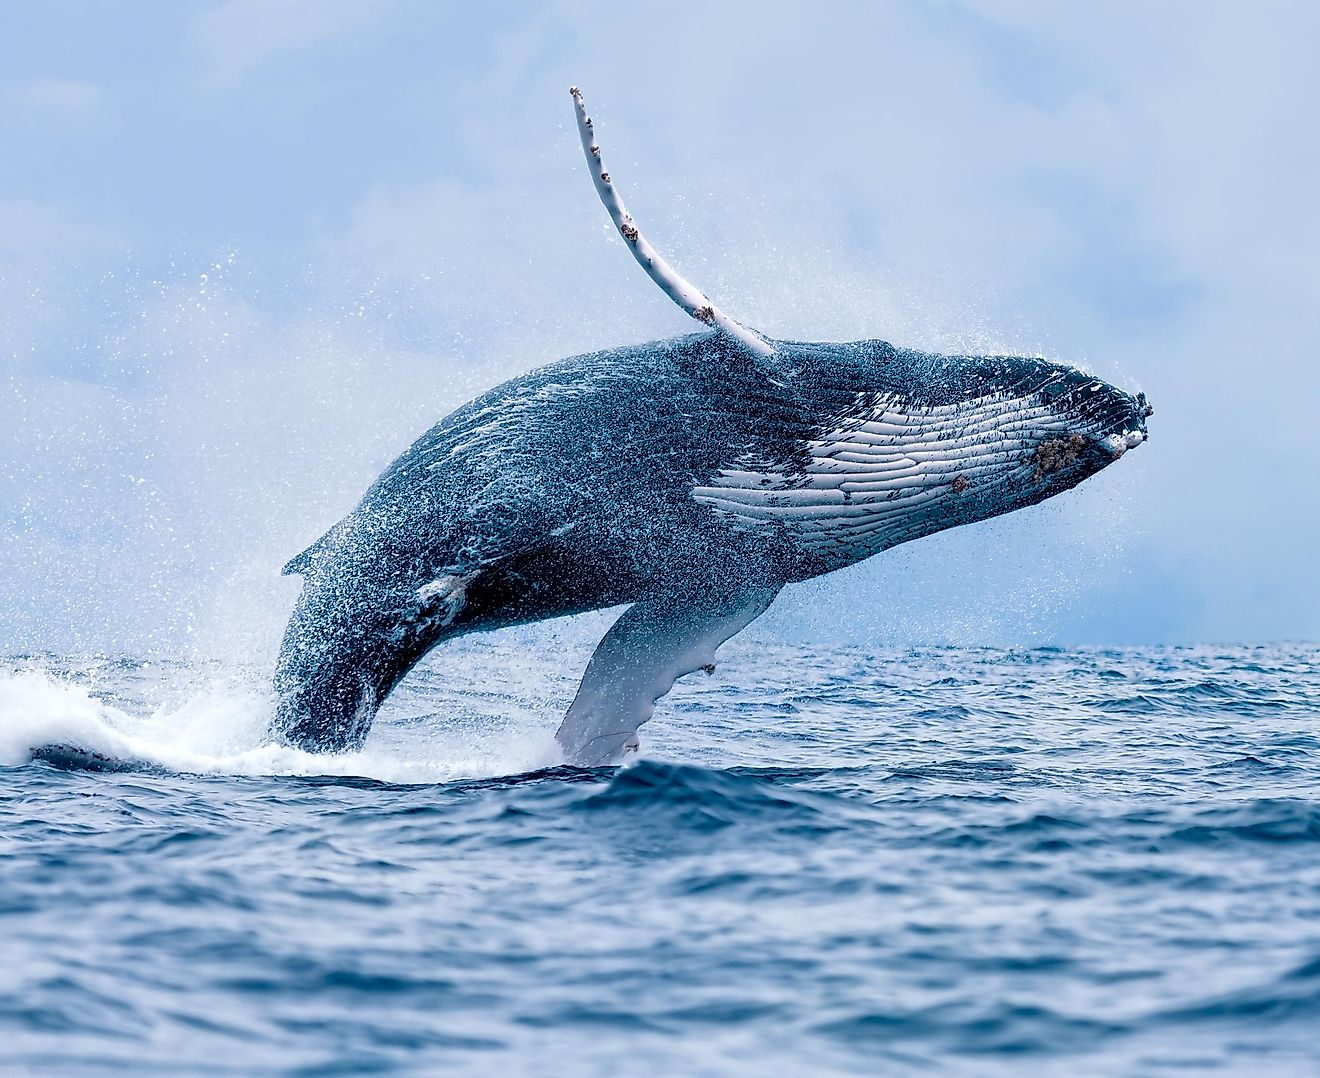 It's a spectacular, mesmerizing sight, a gigantic mammal flinging itself out of the ocean.